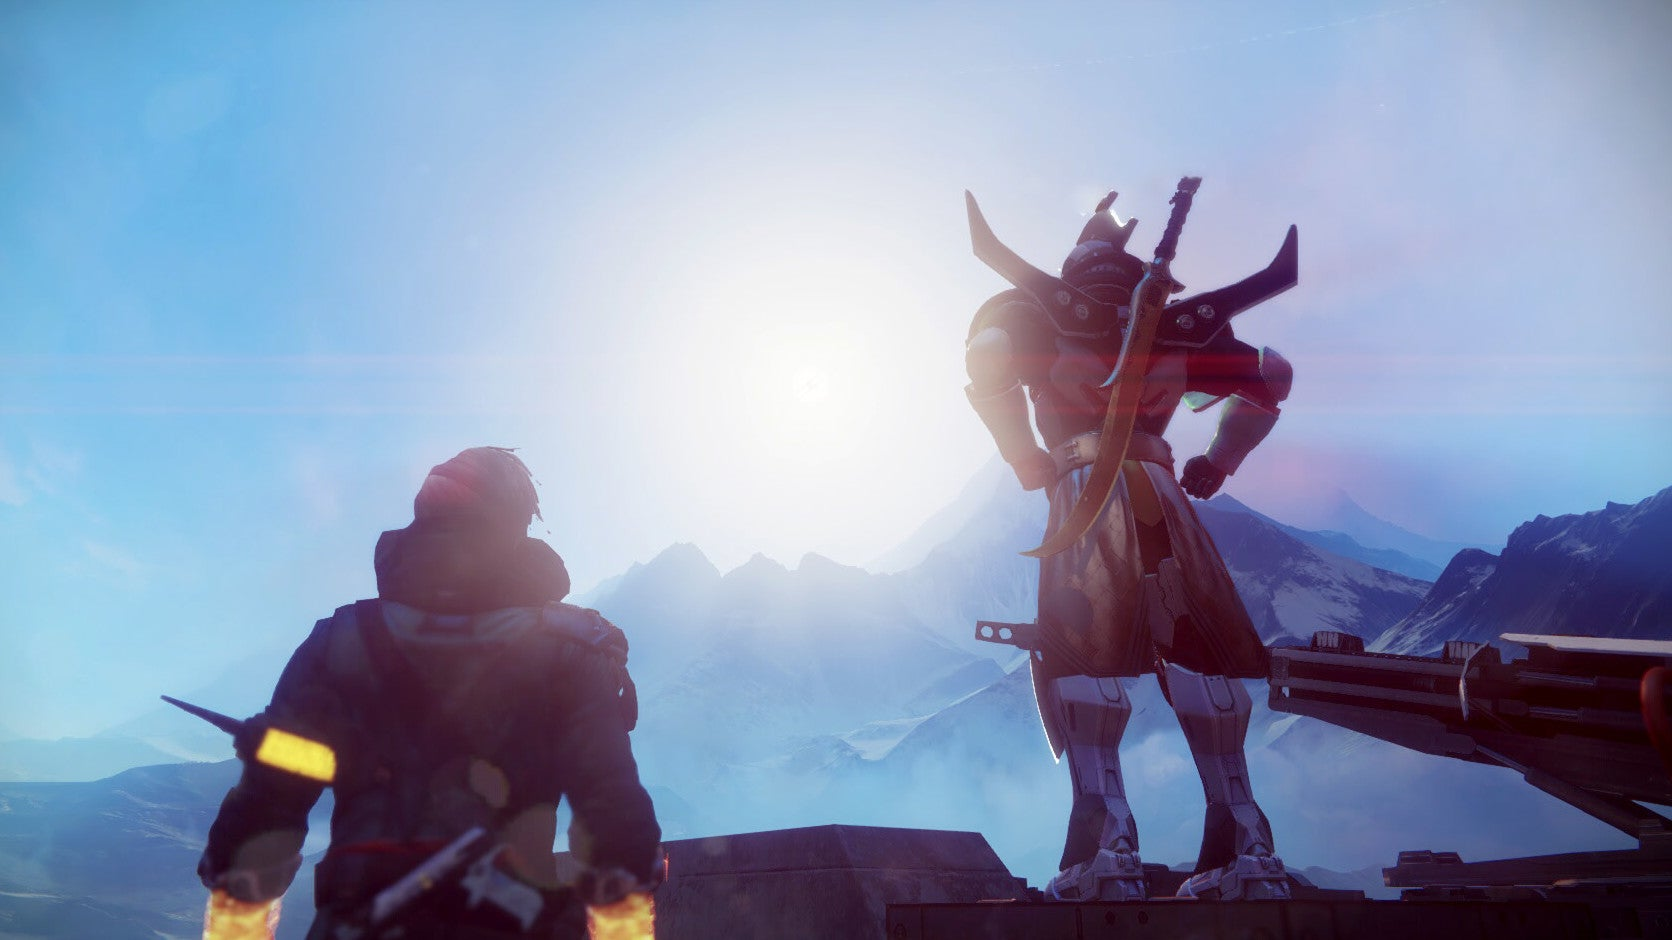 Destiny 2 Players Are Looking For A Giant Spaceship By Staring Directly Into The Sun